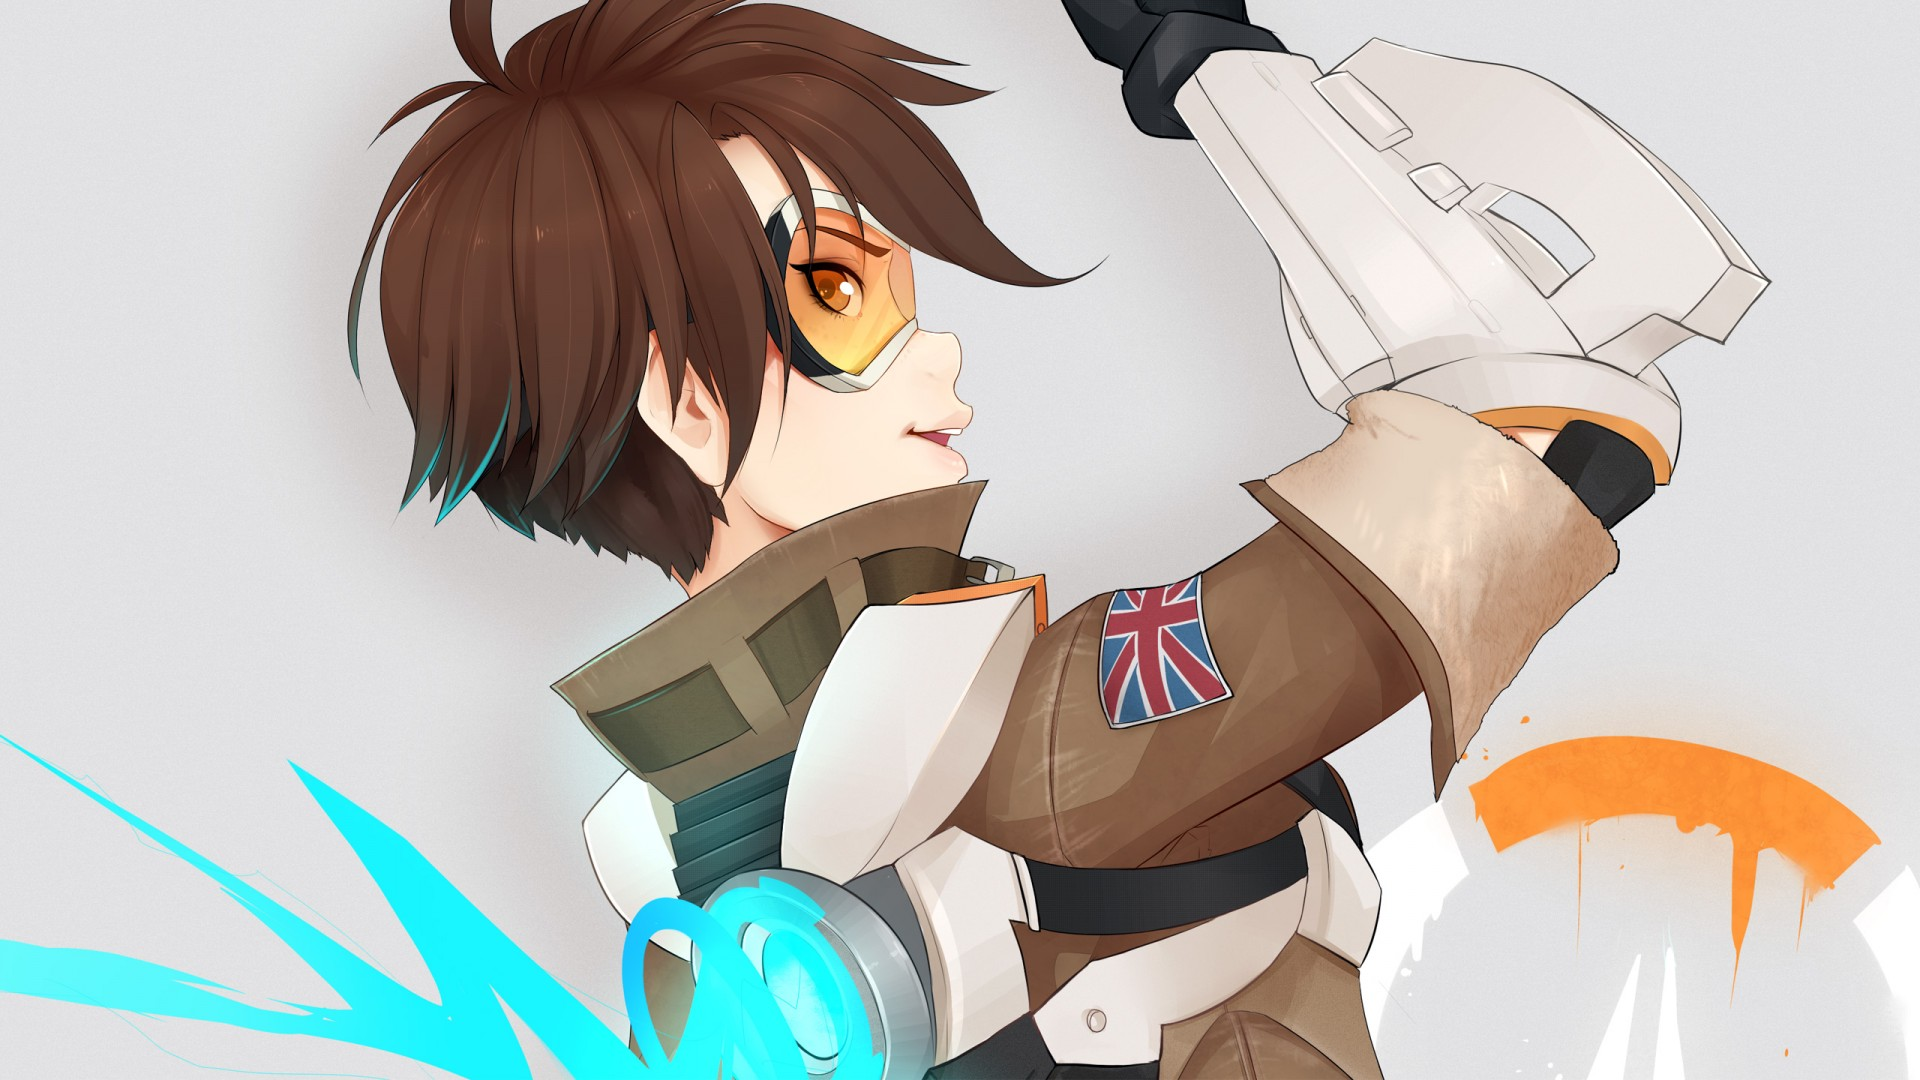 3d Wallpapers Hd 1680x1050 Overwatch Tracer Hd Wallpapers Hd Wallpapers Id 17782